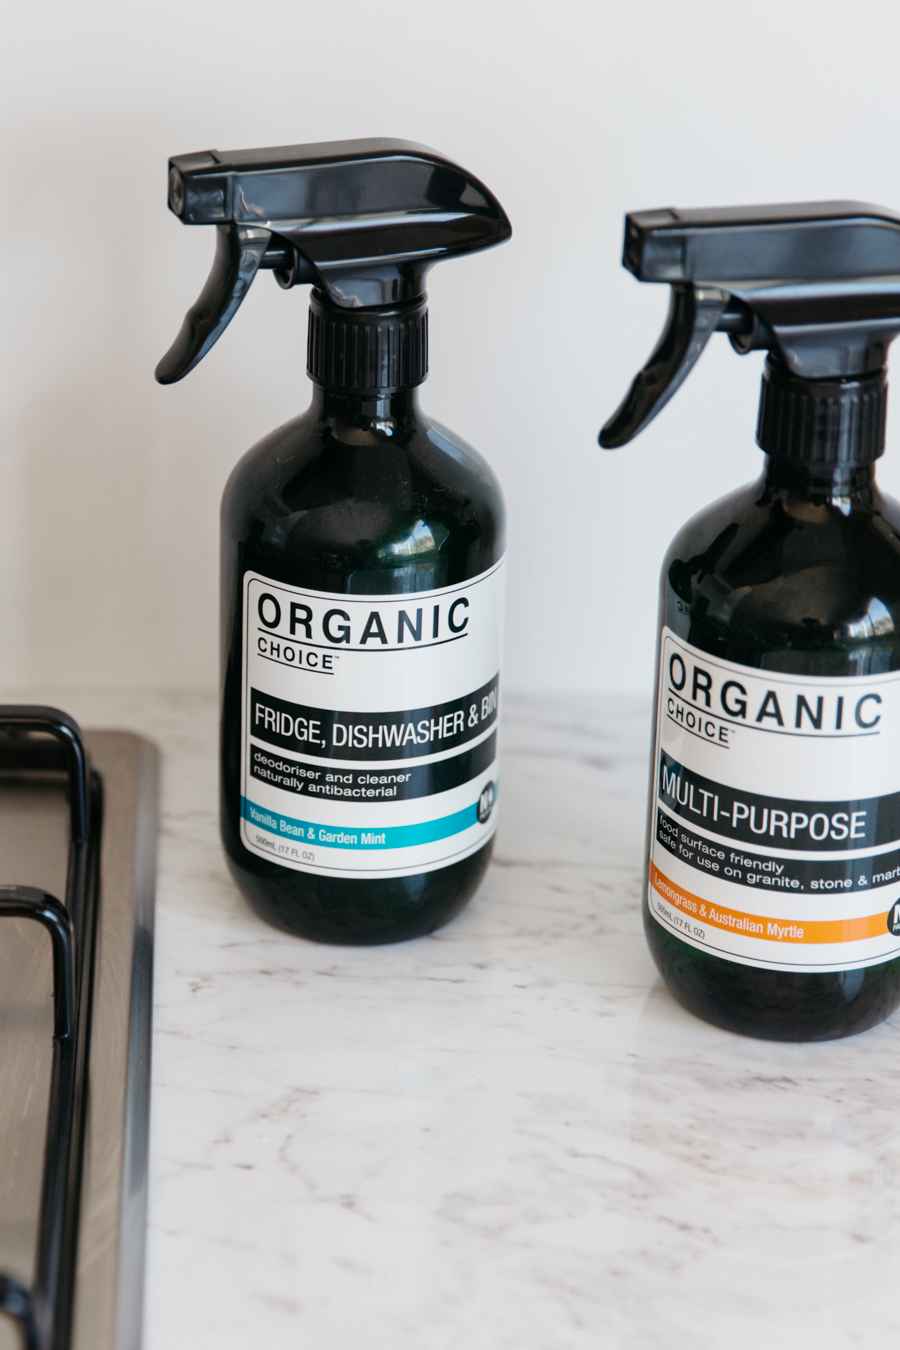 Organic Choice Australia - exclusively sold at Coles.